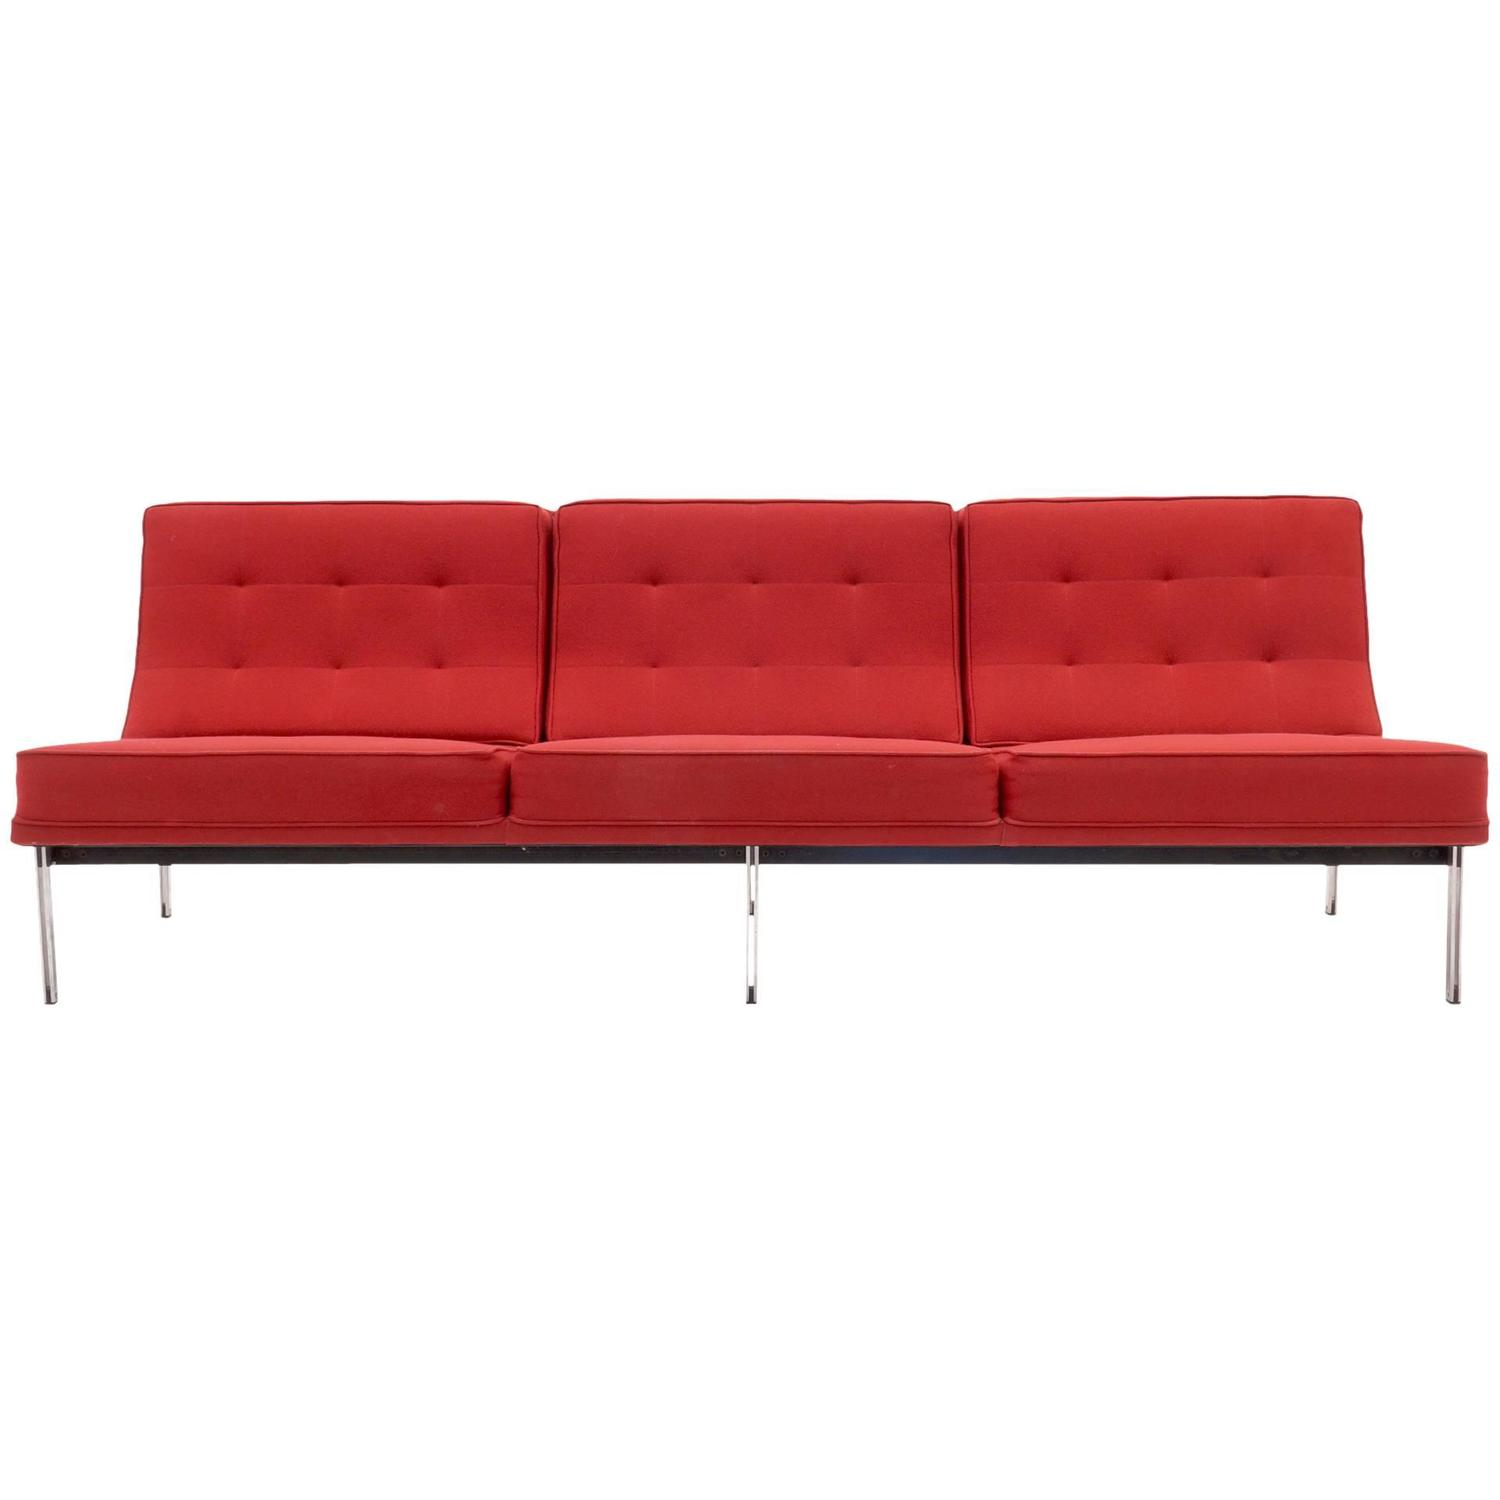 Florence Knoll Parallel Bar Three Seat Armless Sofa Red Wool